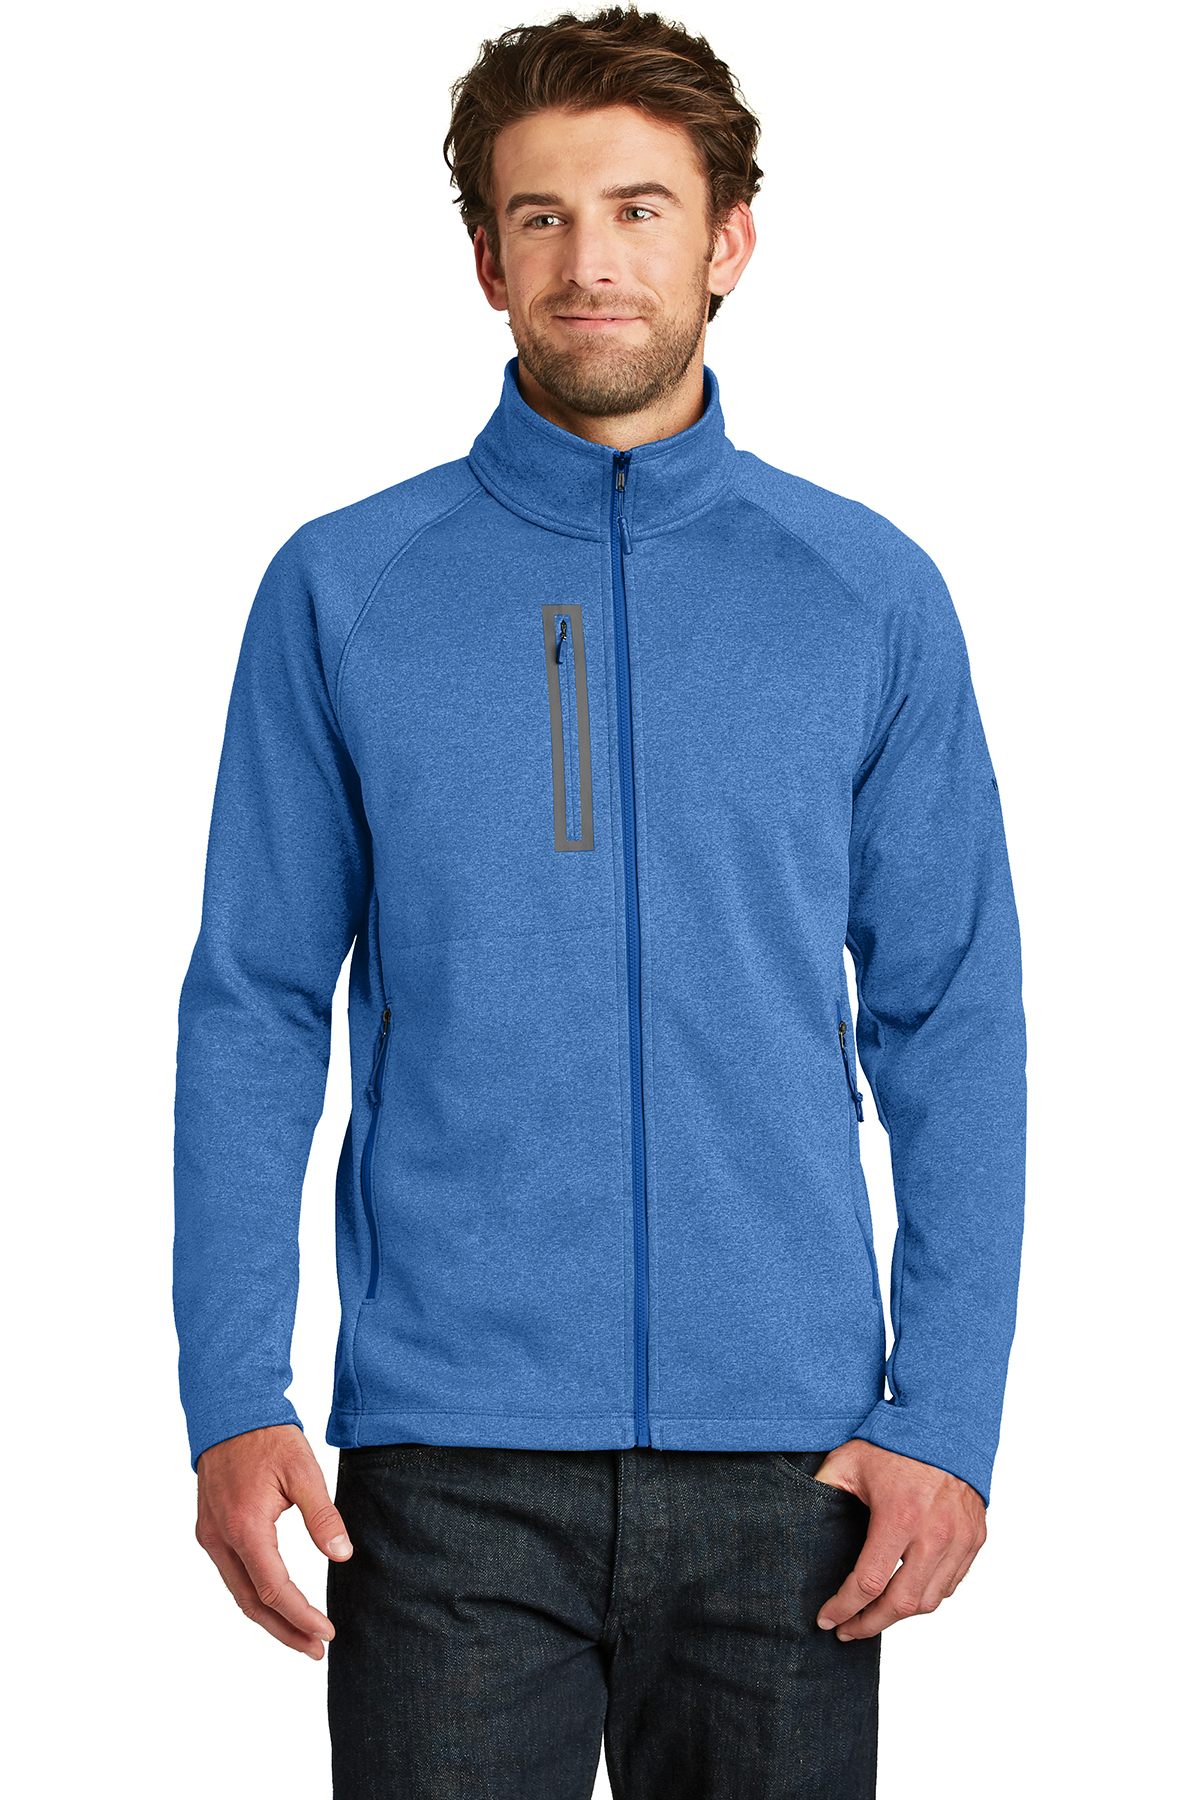 The North Face® NF0A3LH9 - Men's Canyon Flats Fleece Jacket